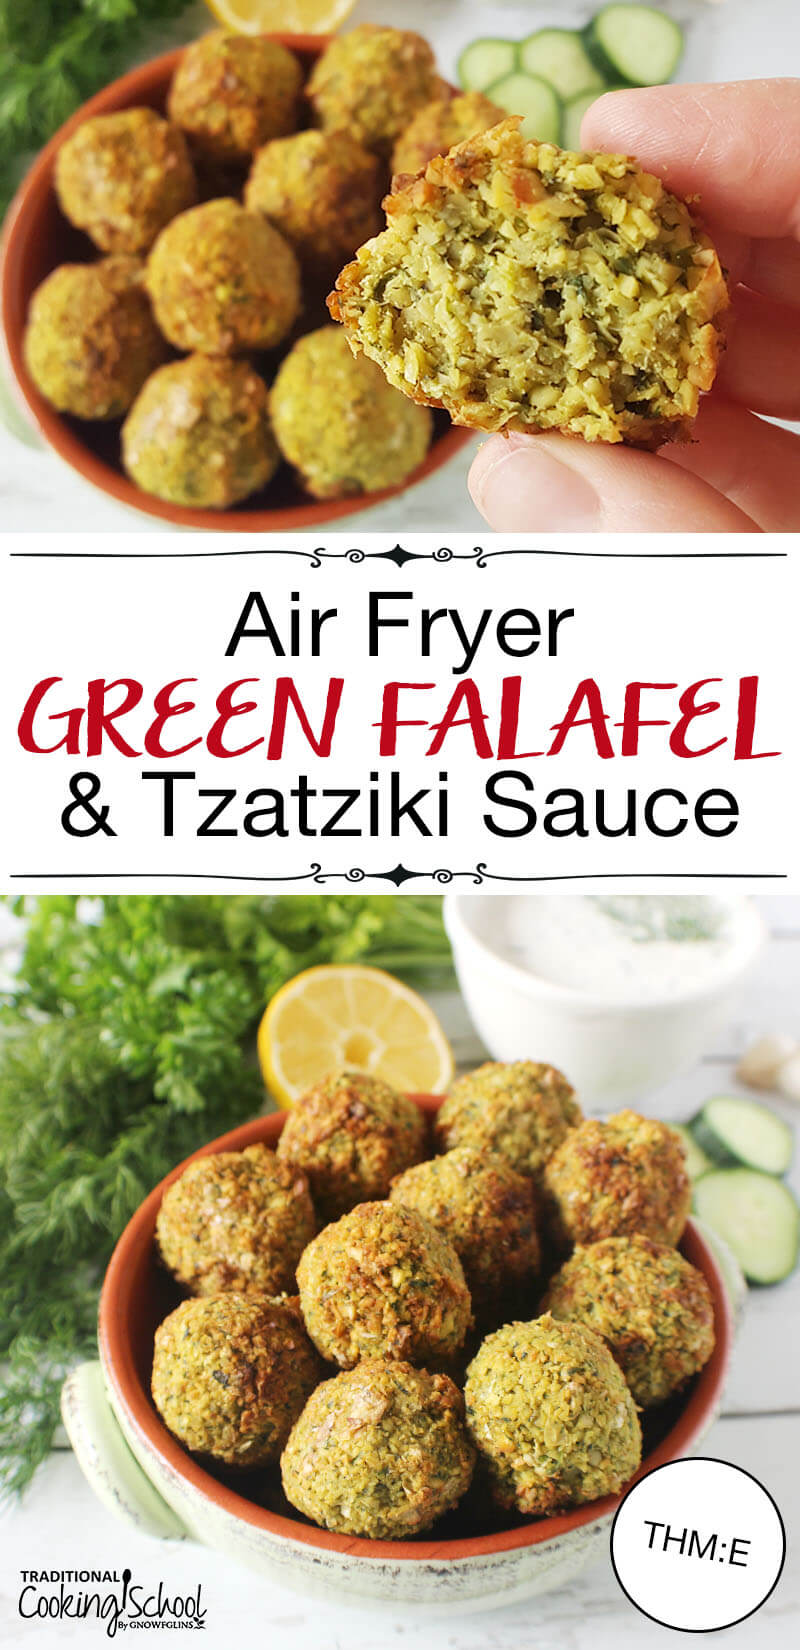 """photo collage of a red ceramic bowl of falafel on a white wooden background with fresh dill, half a lemon, cucumber slices, and a bowl of tzatziki sauce with text overlay: """"Air Fryer Green Falafel & Tzatziki Sauce (THM:E)"""""""